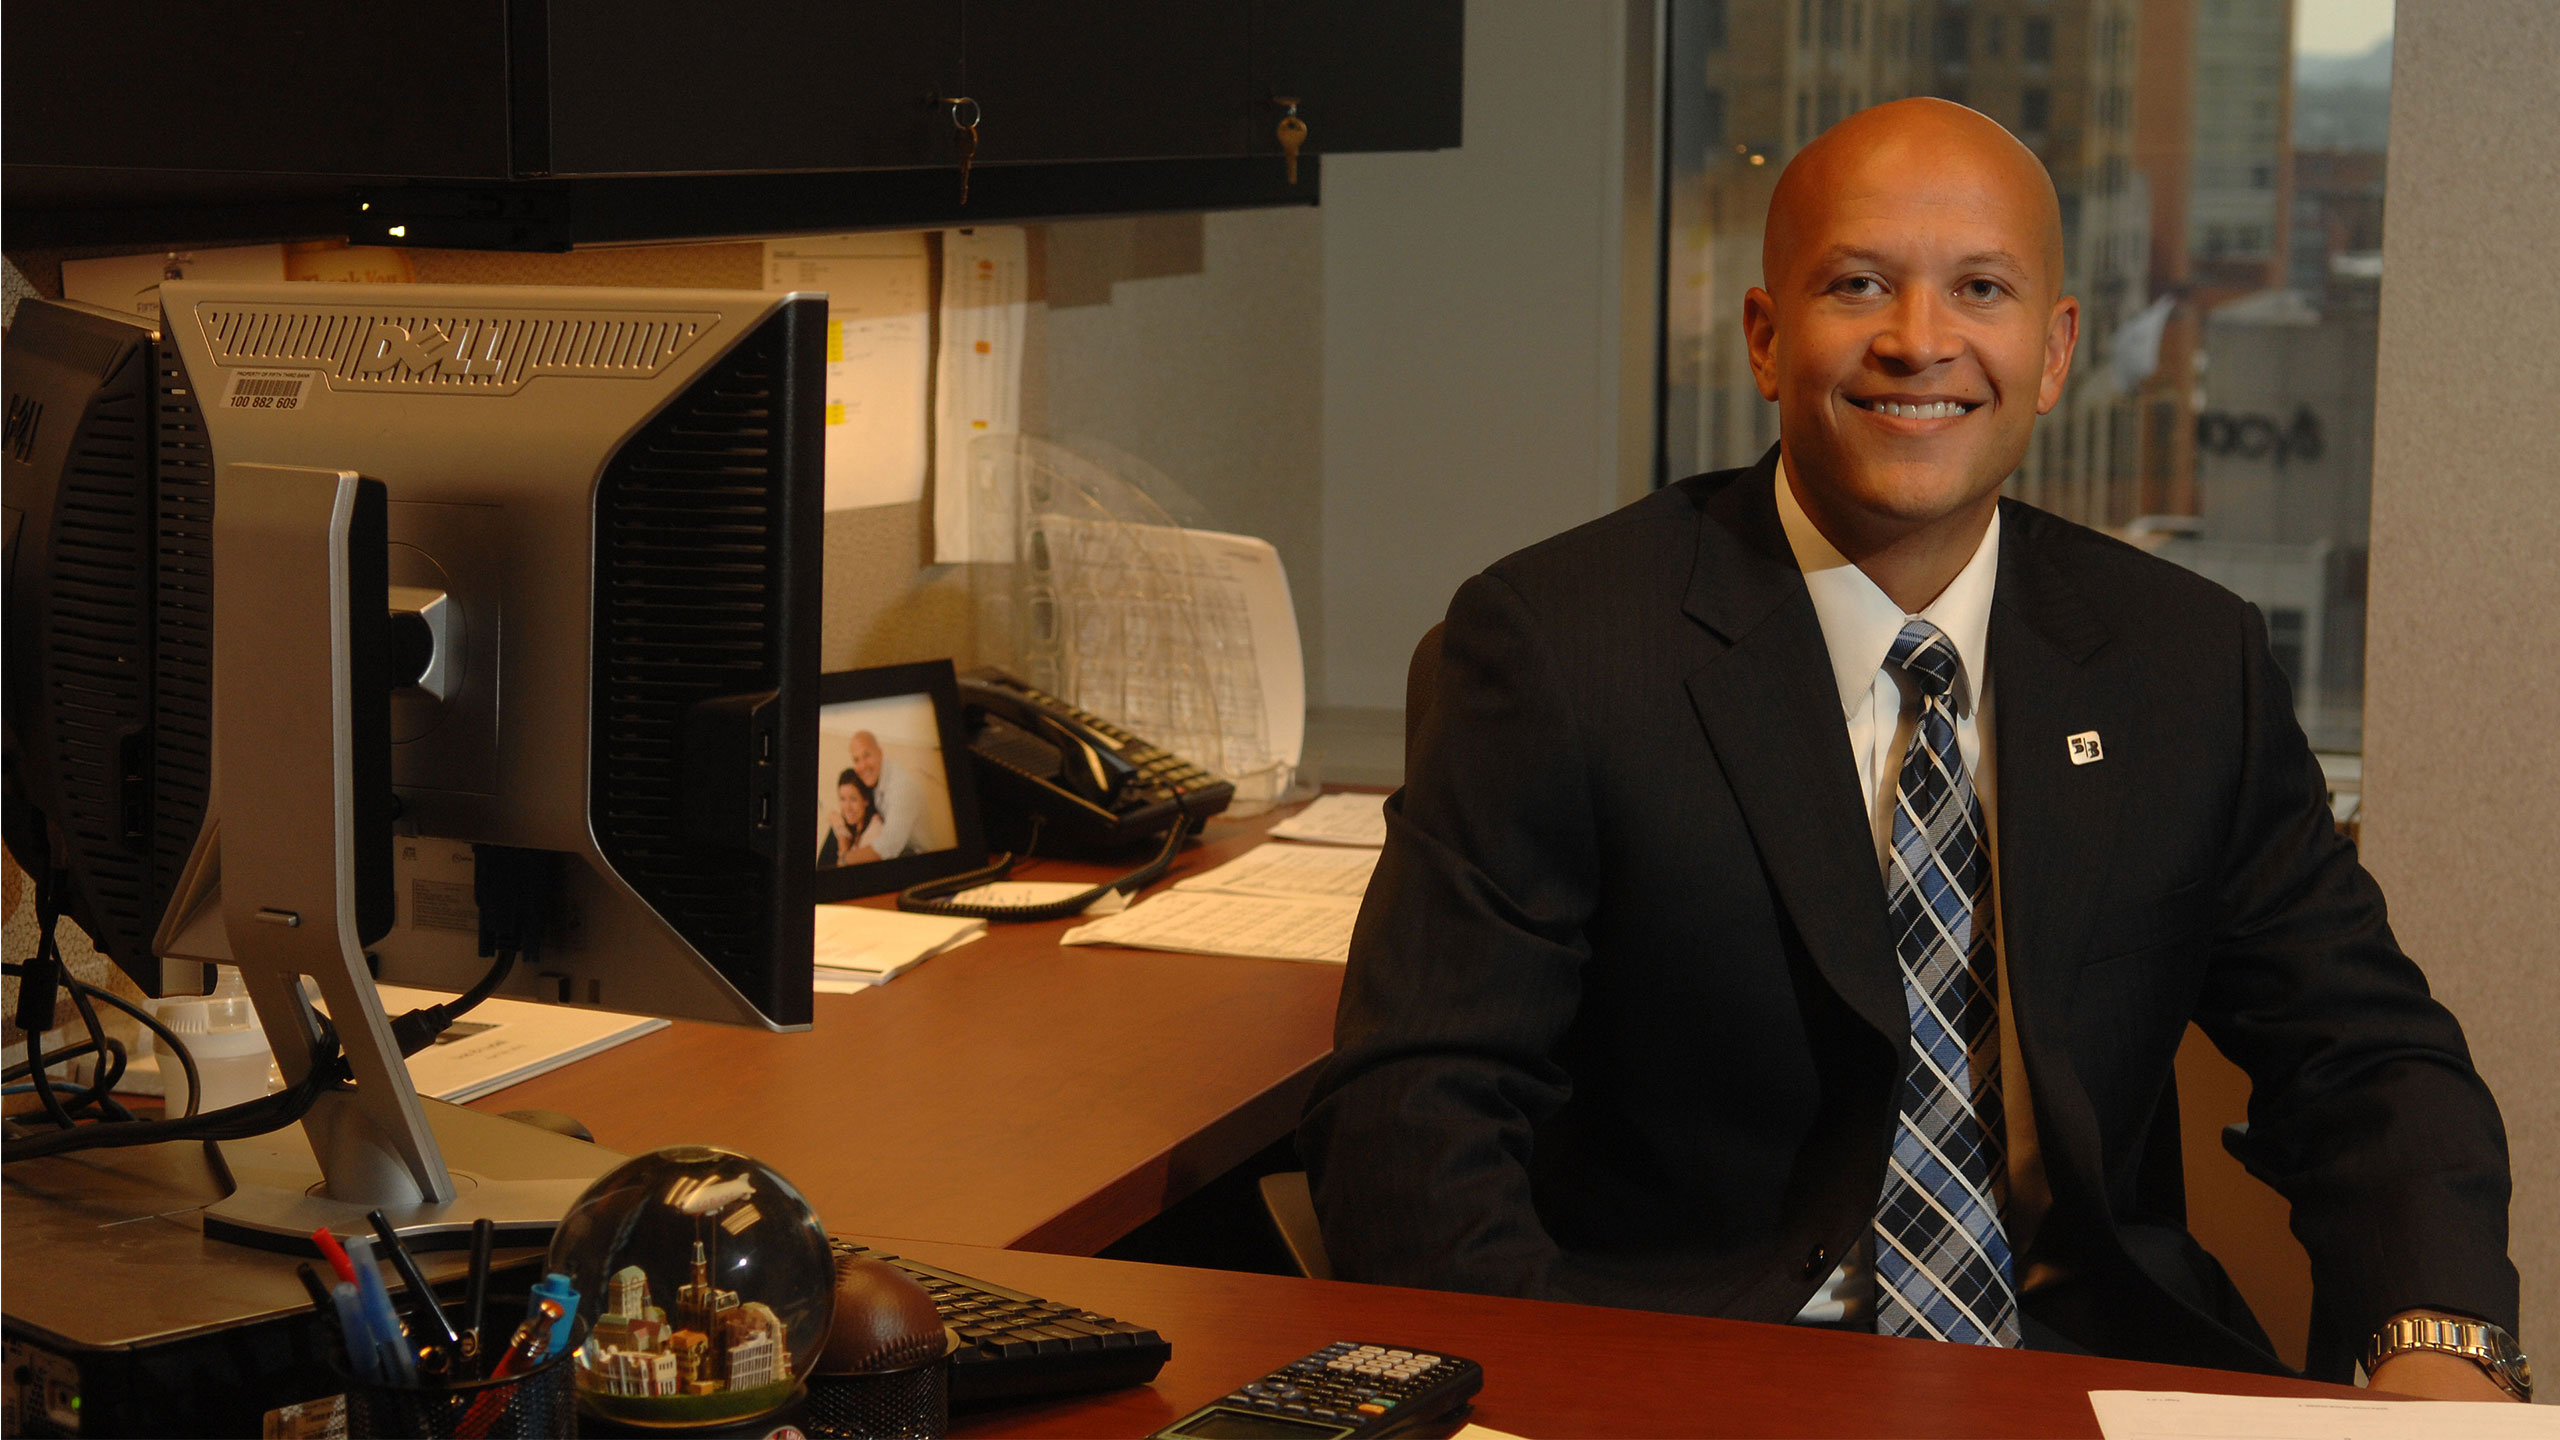 A businessman sitting at his desk.